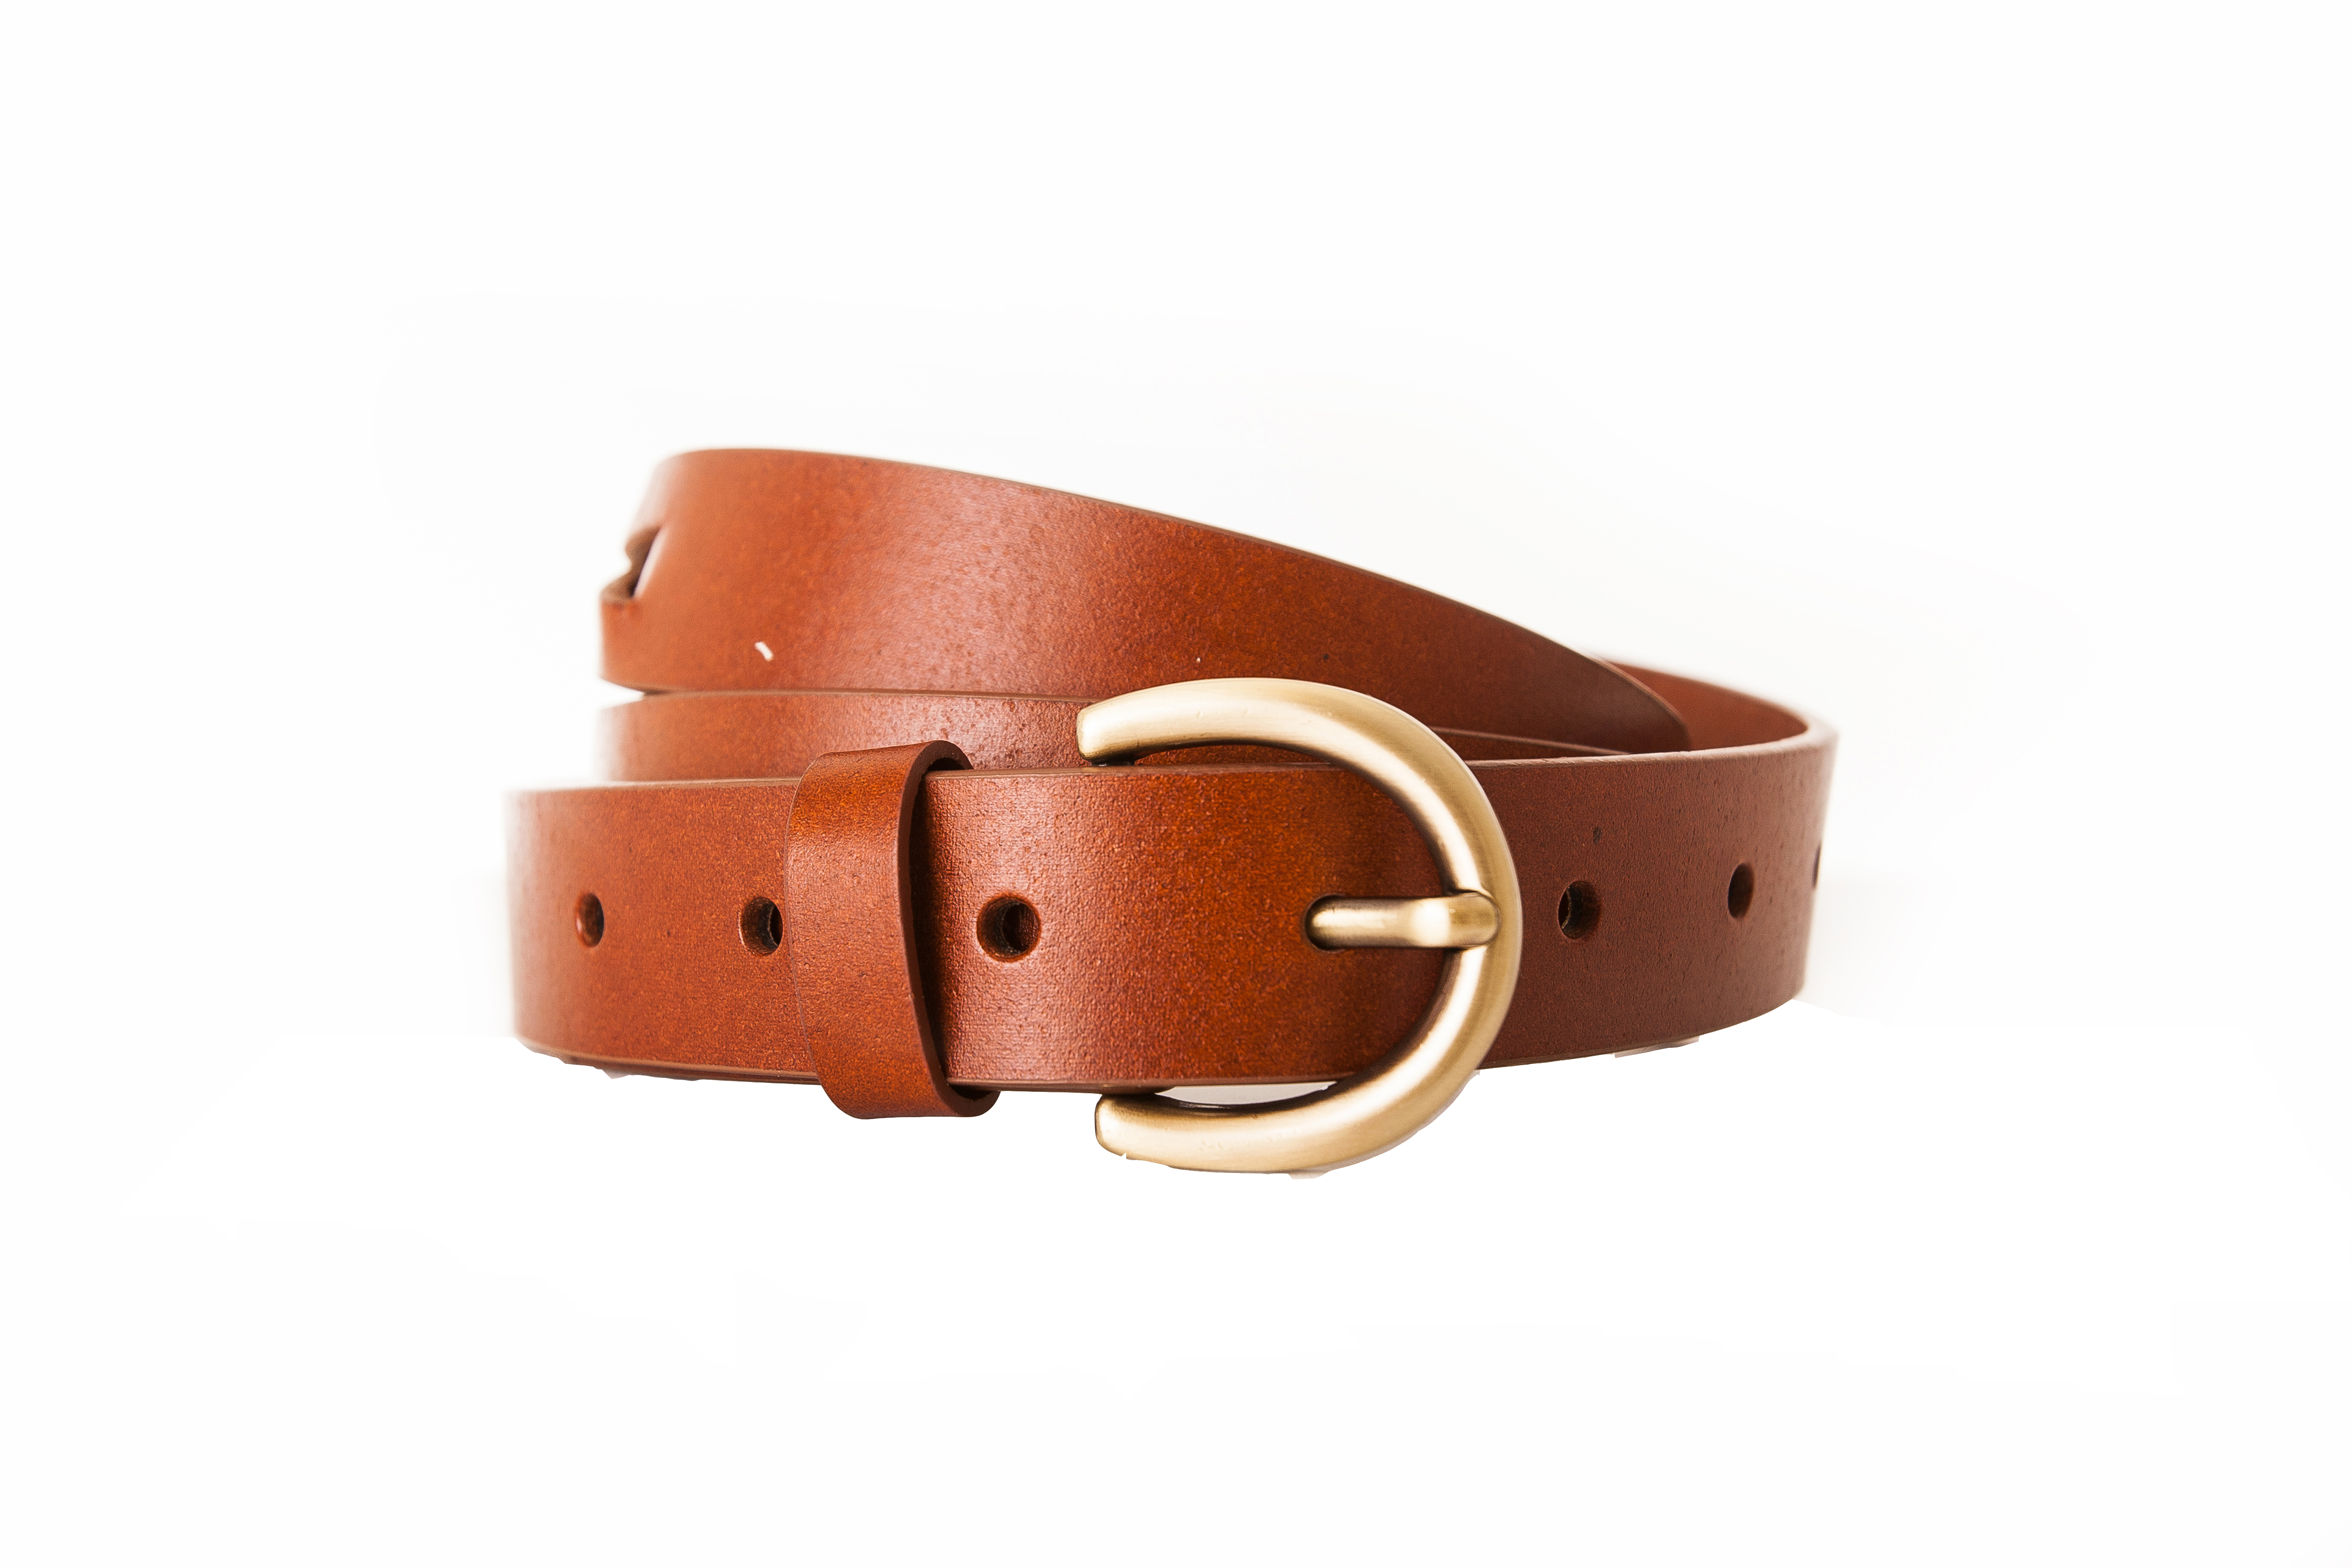 High style meets artisanal craftsmanship on the Genoa leather belt in brown. With flourish and flair, the silver-plated buckle and refined leather recalls the scrollwork and romance of the Italian Renaissance.